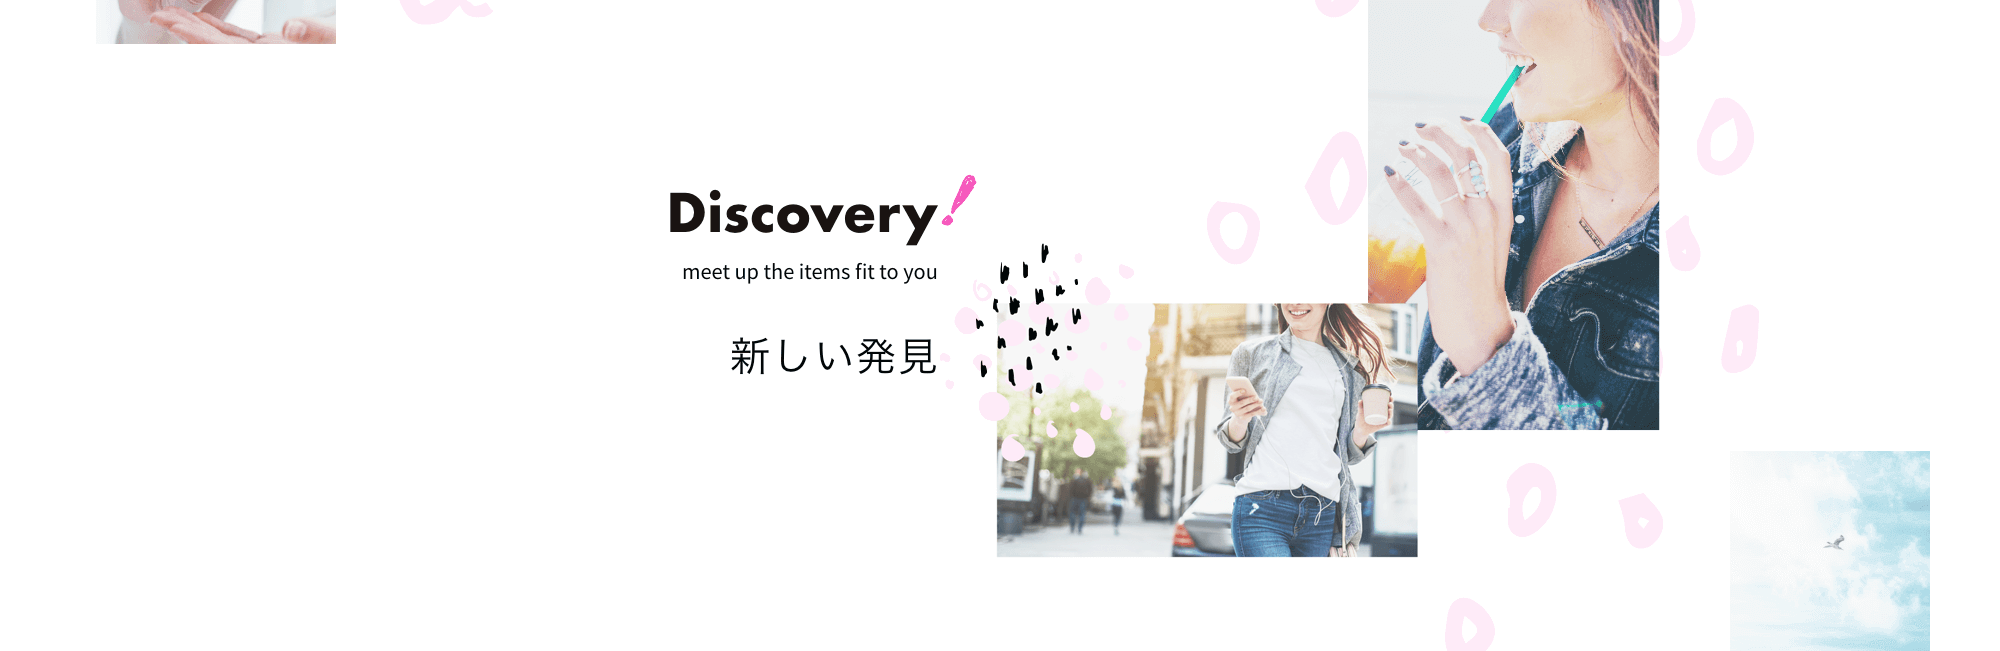 Discovery 新しい発見